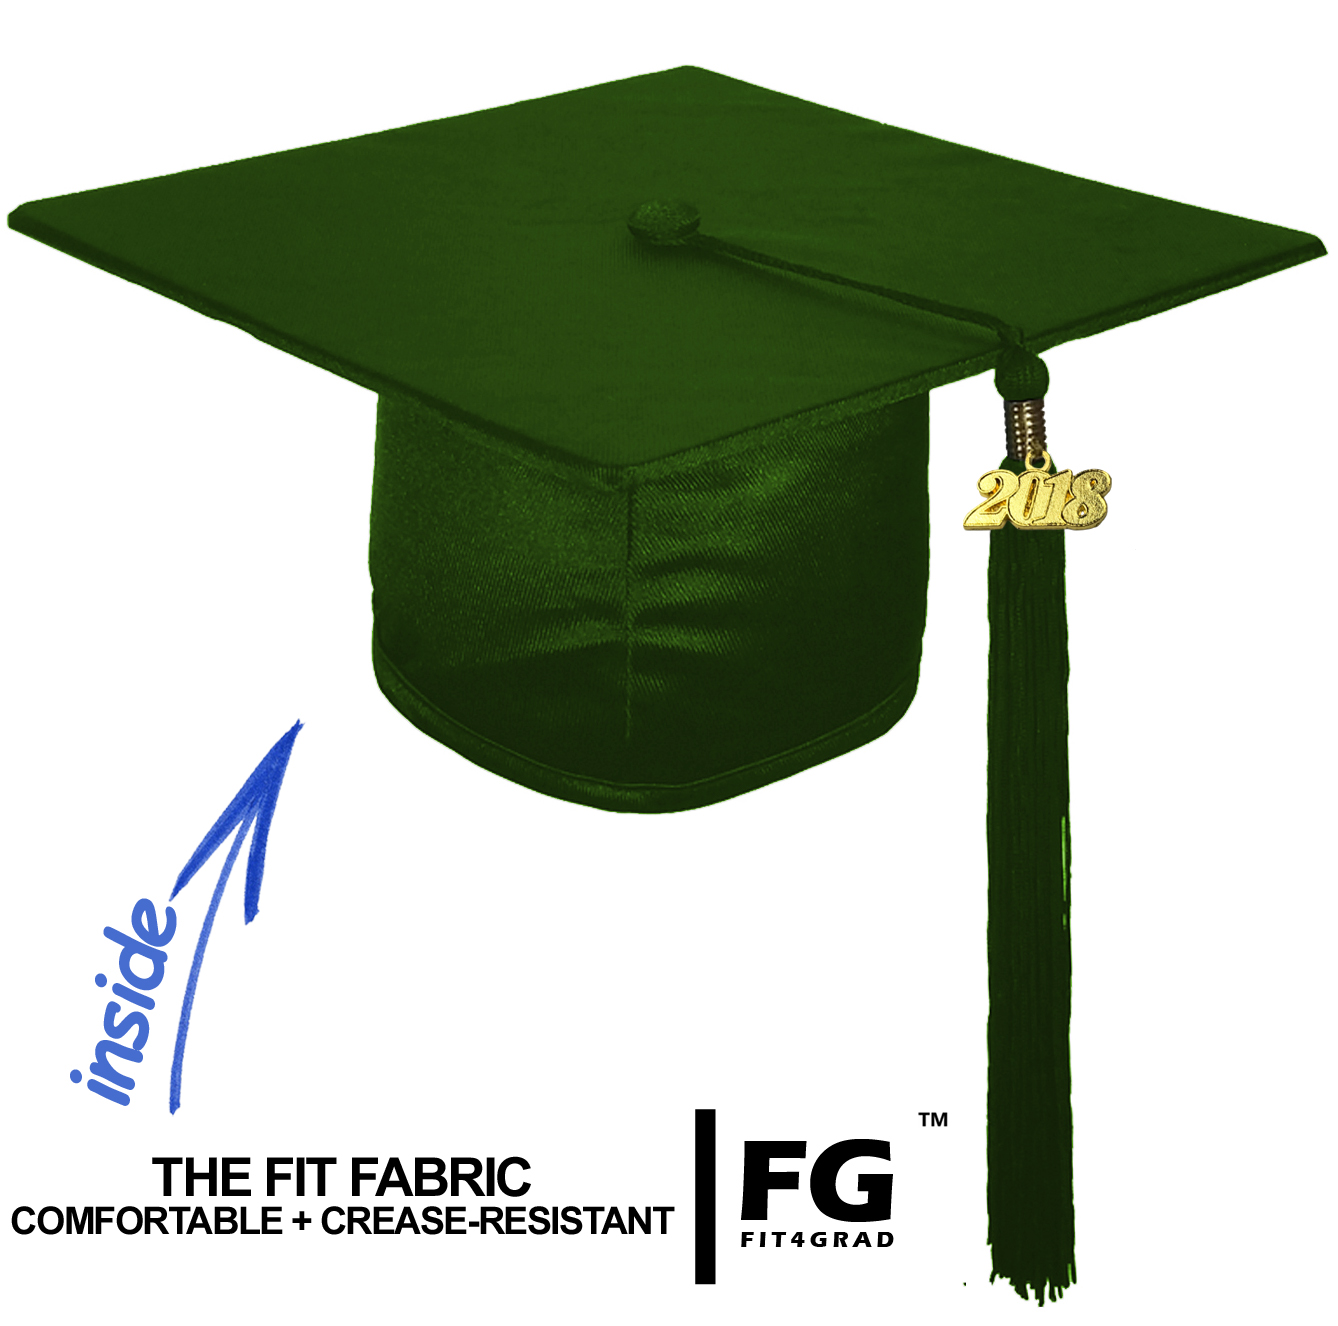 Shiny Bachelor Academic Cap, Gown & Tassel forest green-cf105800